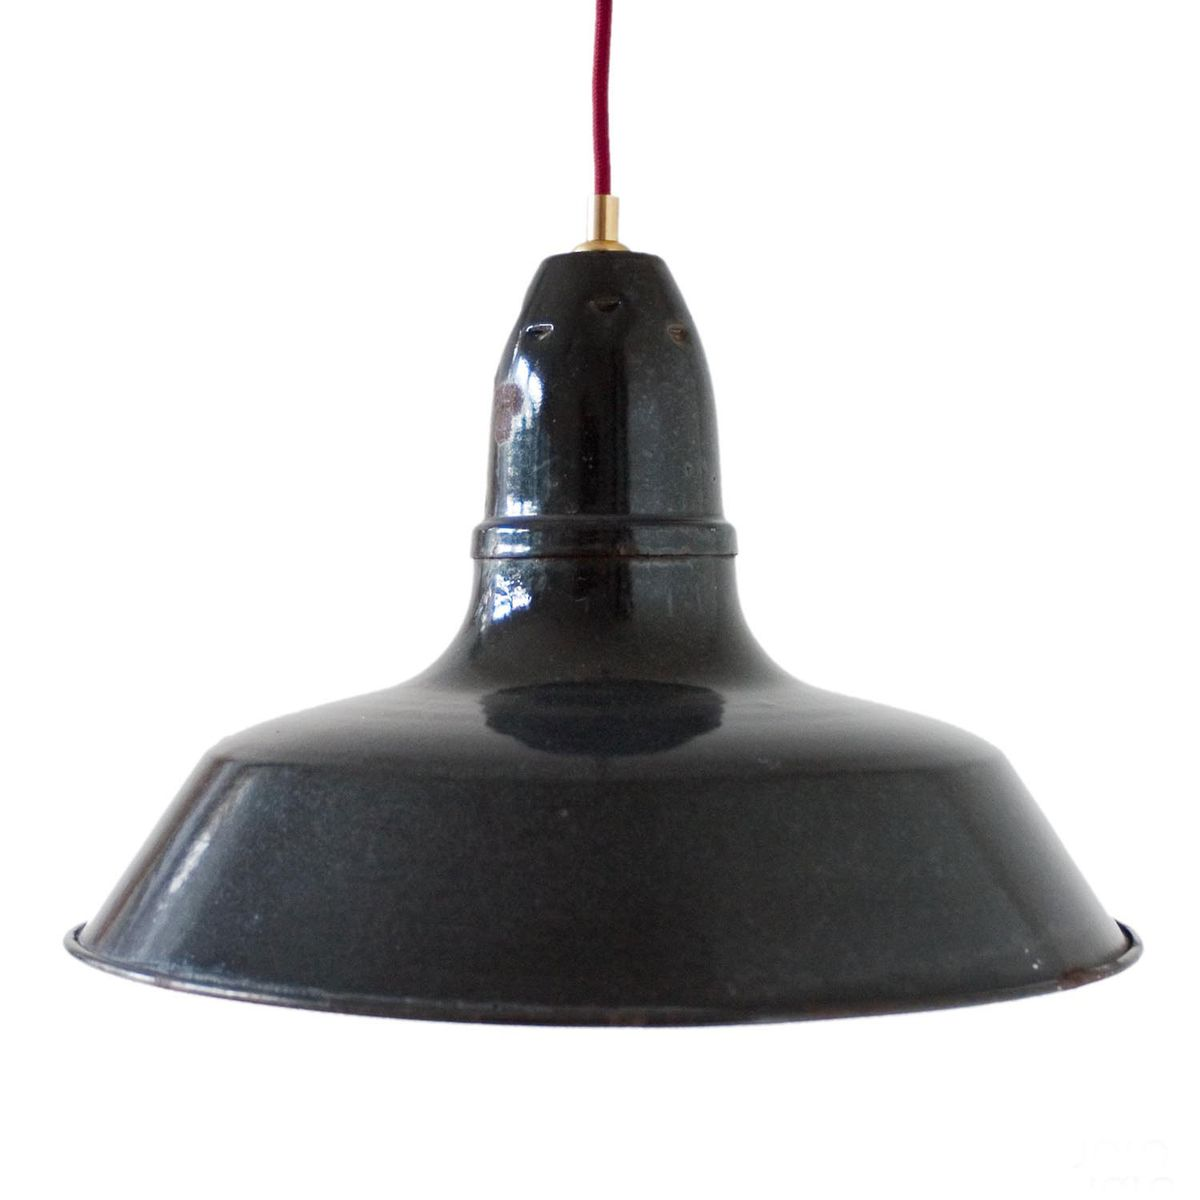 Lampe suspension industrielle vintage noire emaill e france en vente sur pamono - Lampe suspension industrielle ...